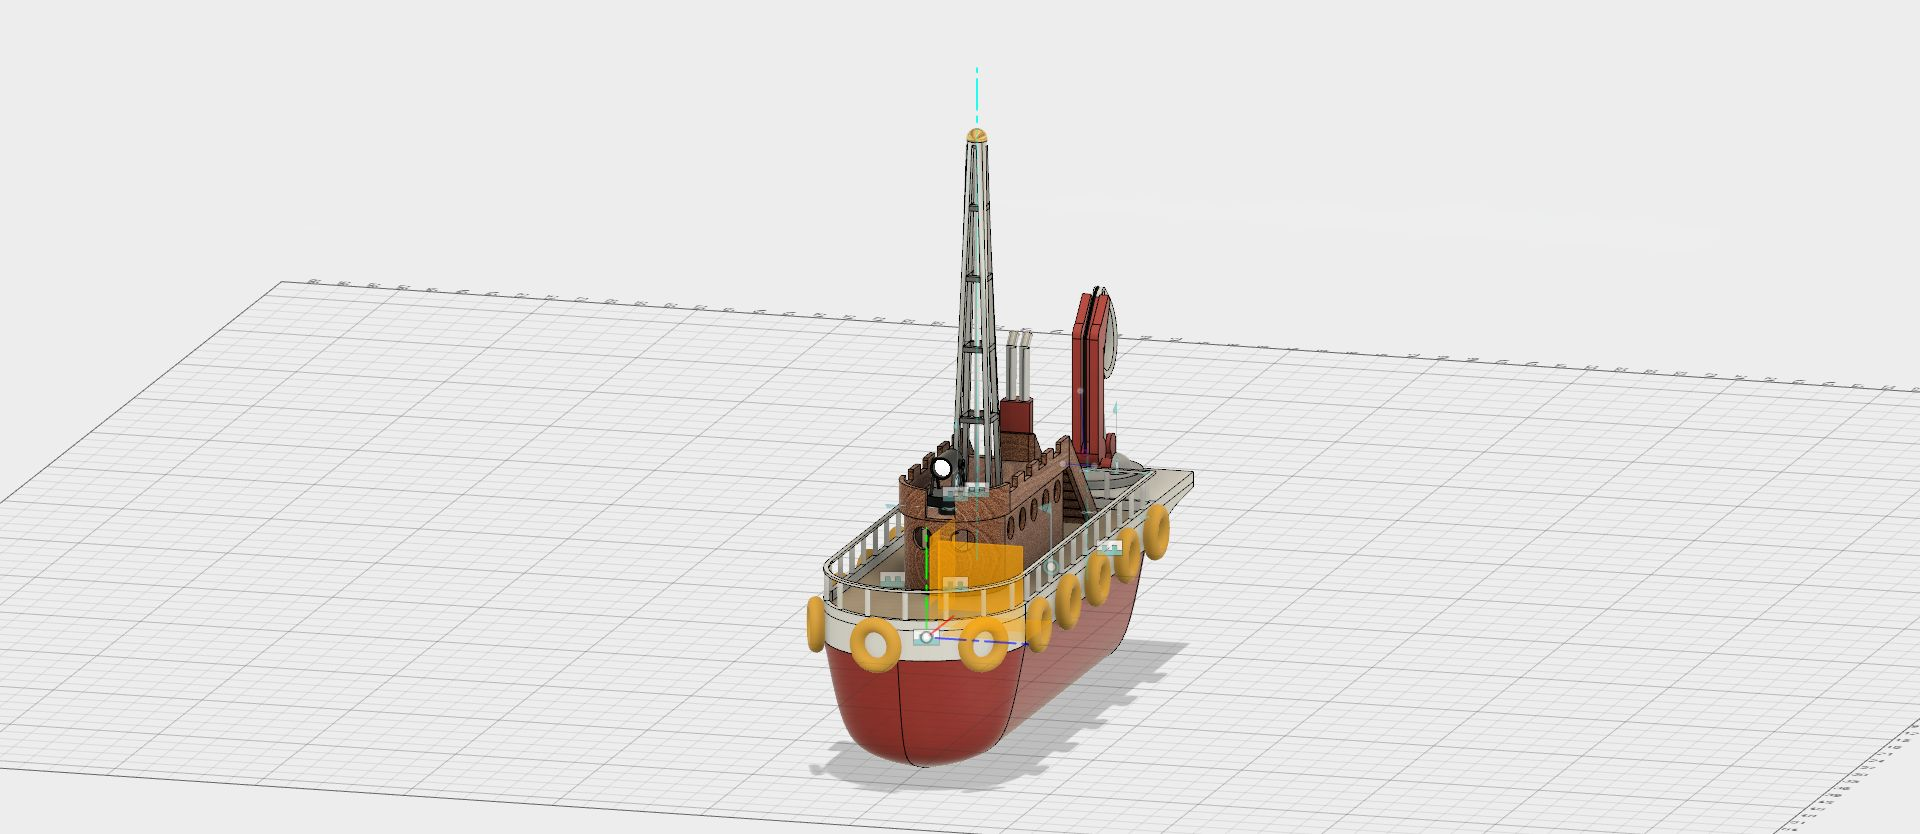 Tug-boat-front-3500-3500